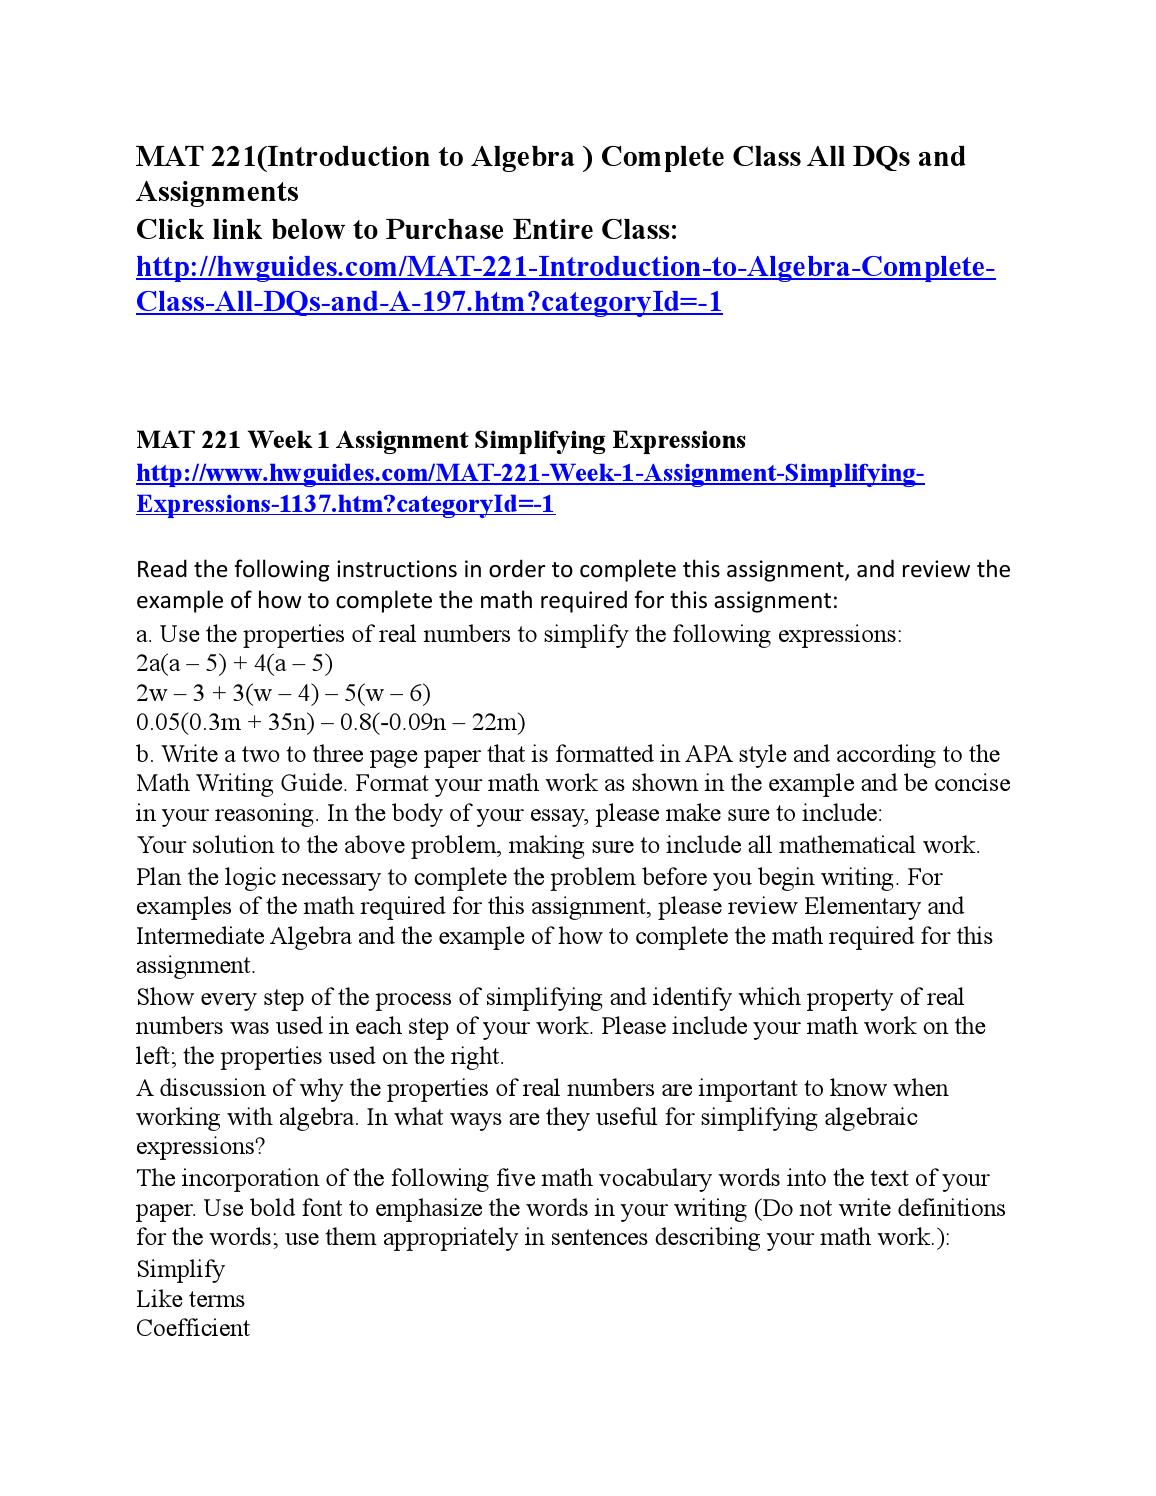 mat 221 week 1 assignment simplifying expressions Unit 1 test unit 2: solving linear equations lesson 01: solving one-step   assignment: in the following examples, perform the arithmetic operations in the   notice that when we say lb per week, we can also write it as lb/week   page 221.